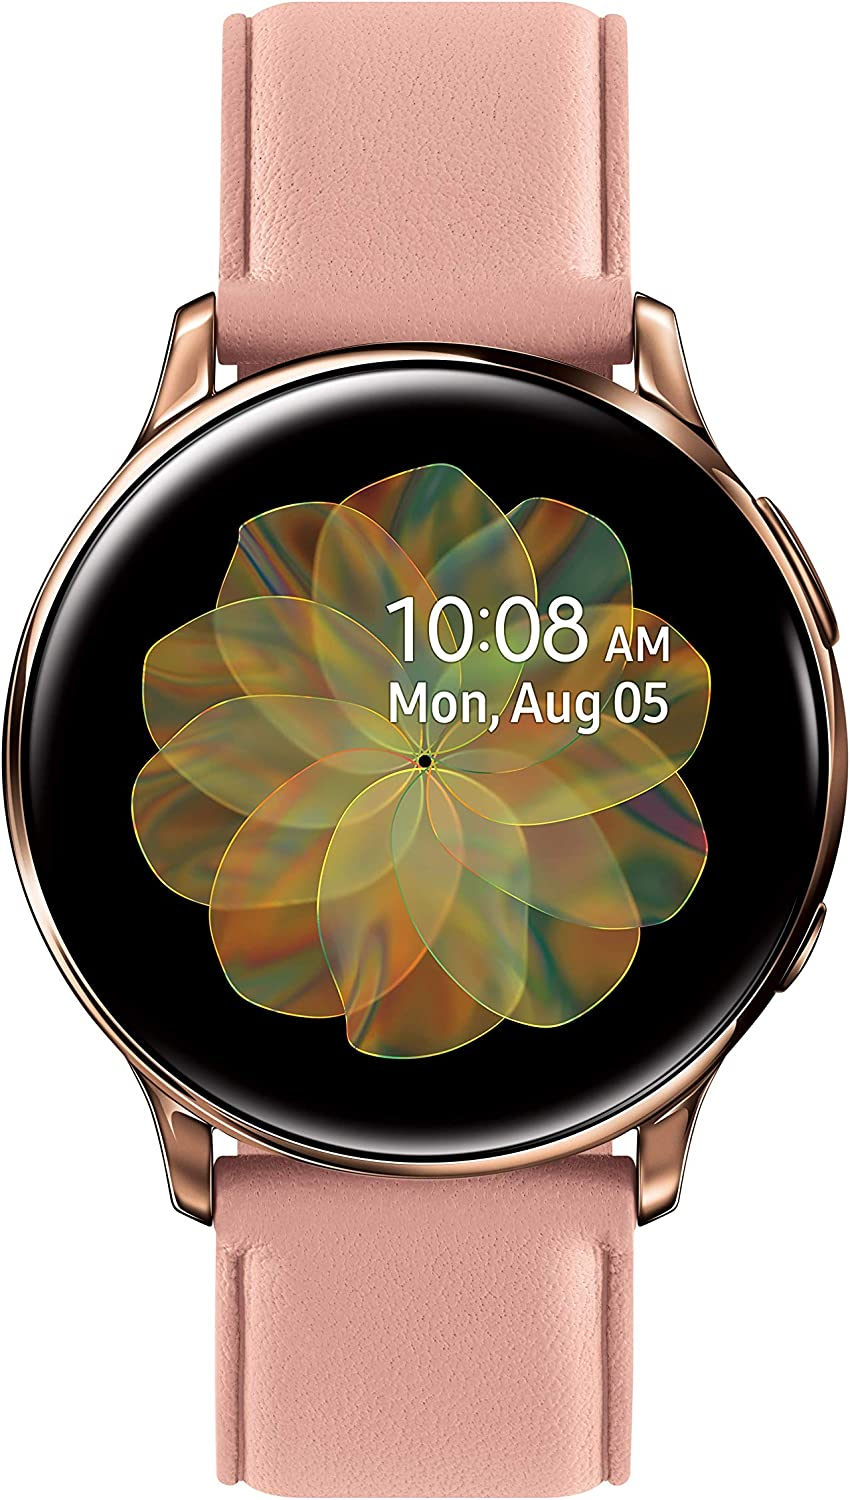 Samsung Galaxy Watch Active2 W/ Enhanced Sleep Tracking Analysis, Auto Workout Tracking, and Pace Coaching (40mm, GPS, Bluetooth, Unlocked LTE), Pink Gold - US Version with Warranty